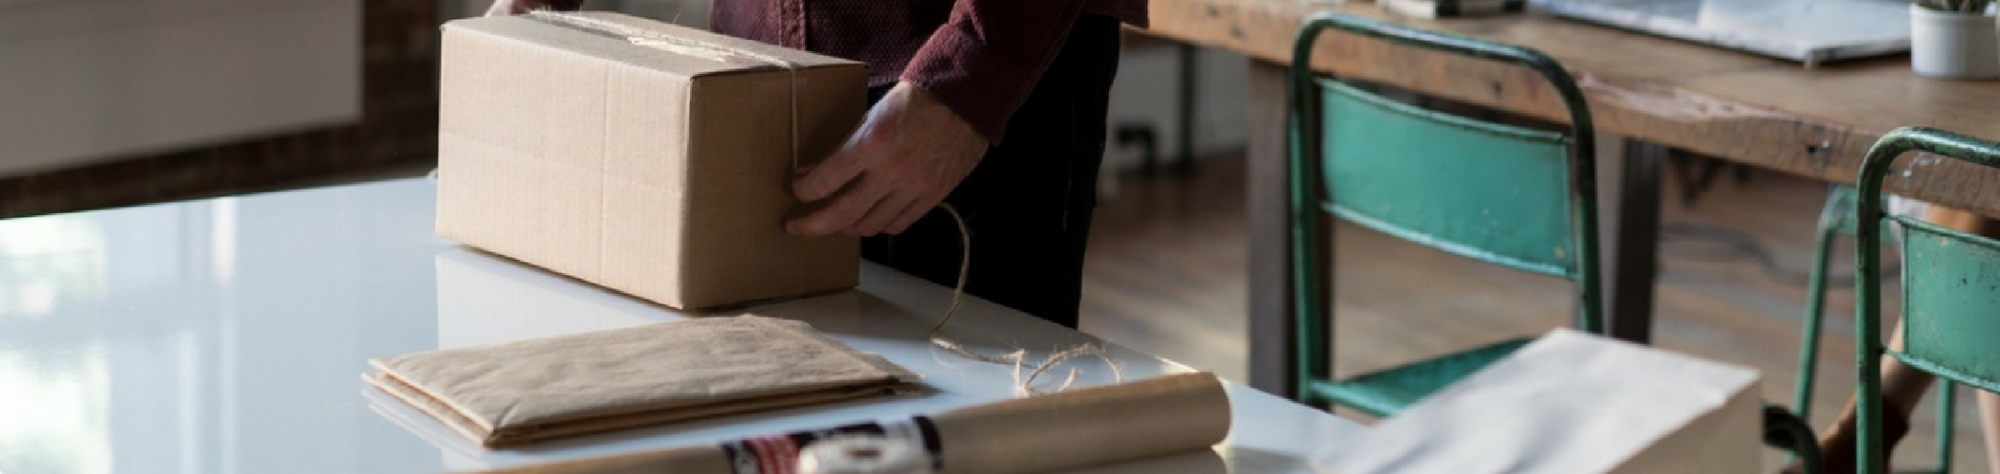 3 Ways You Know You're Doing Care Packages the Right Way